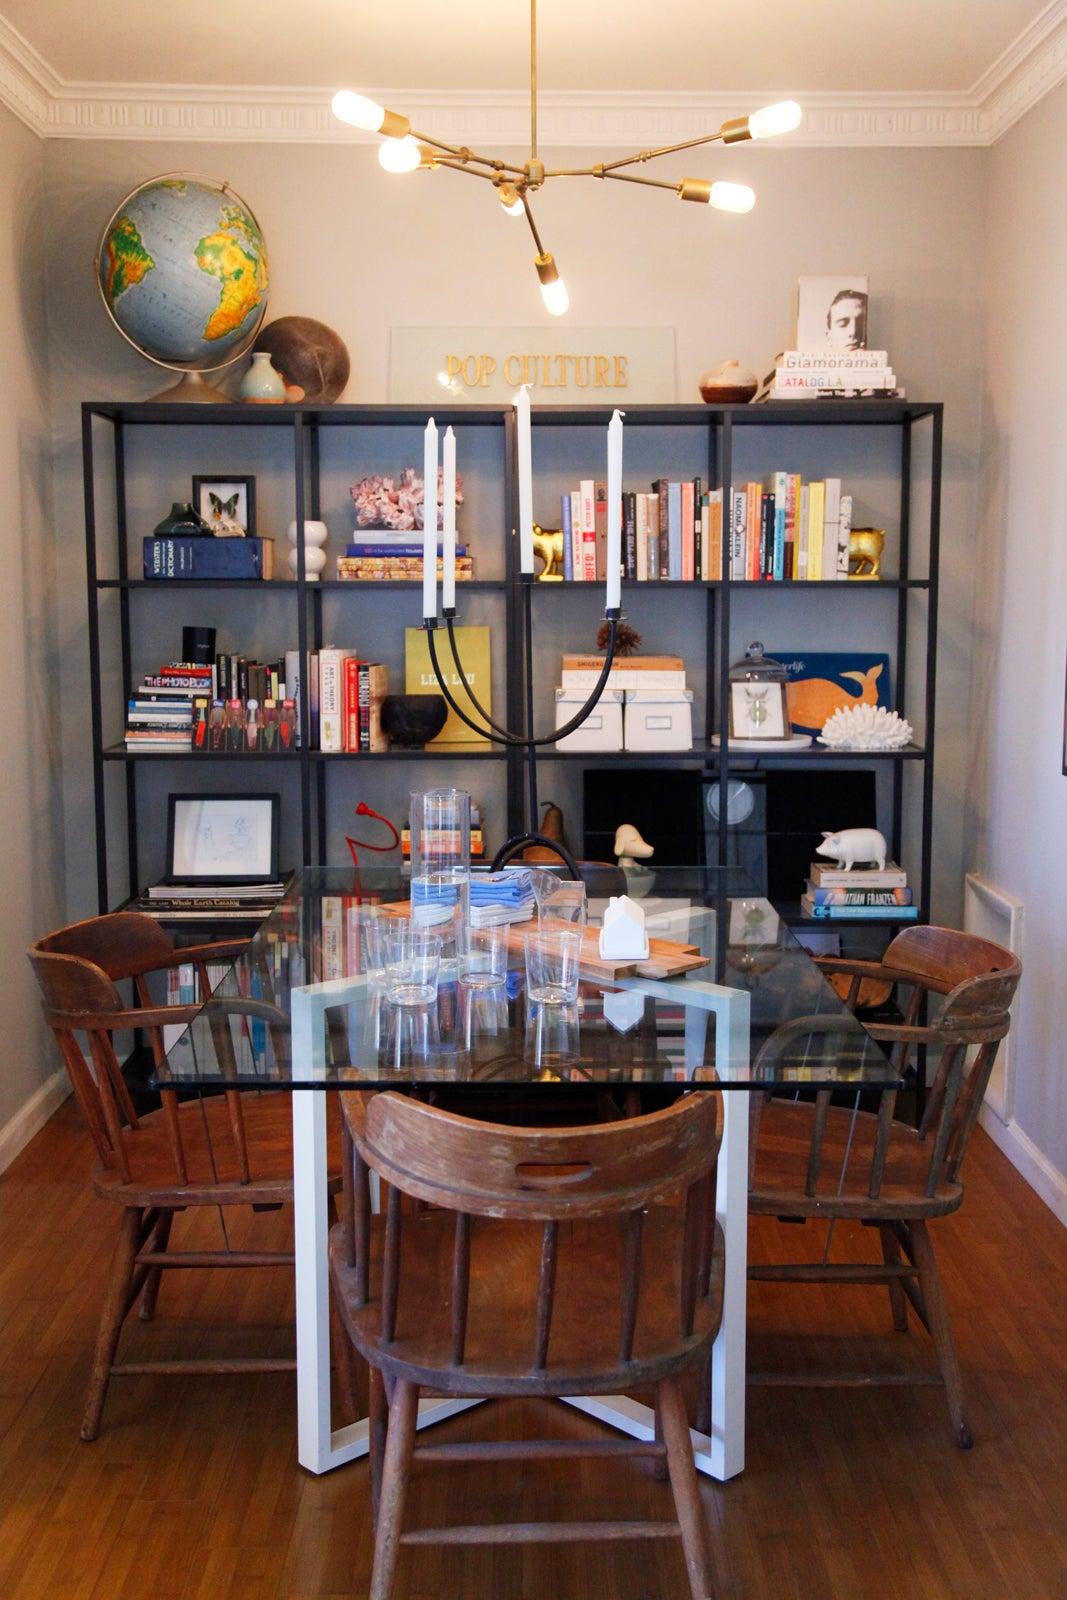 Small Space Decor Ideas Ways To Add Lighting A Closet Without Wiring Apartment Therapy